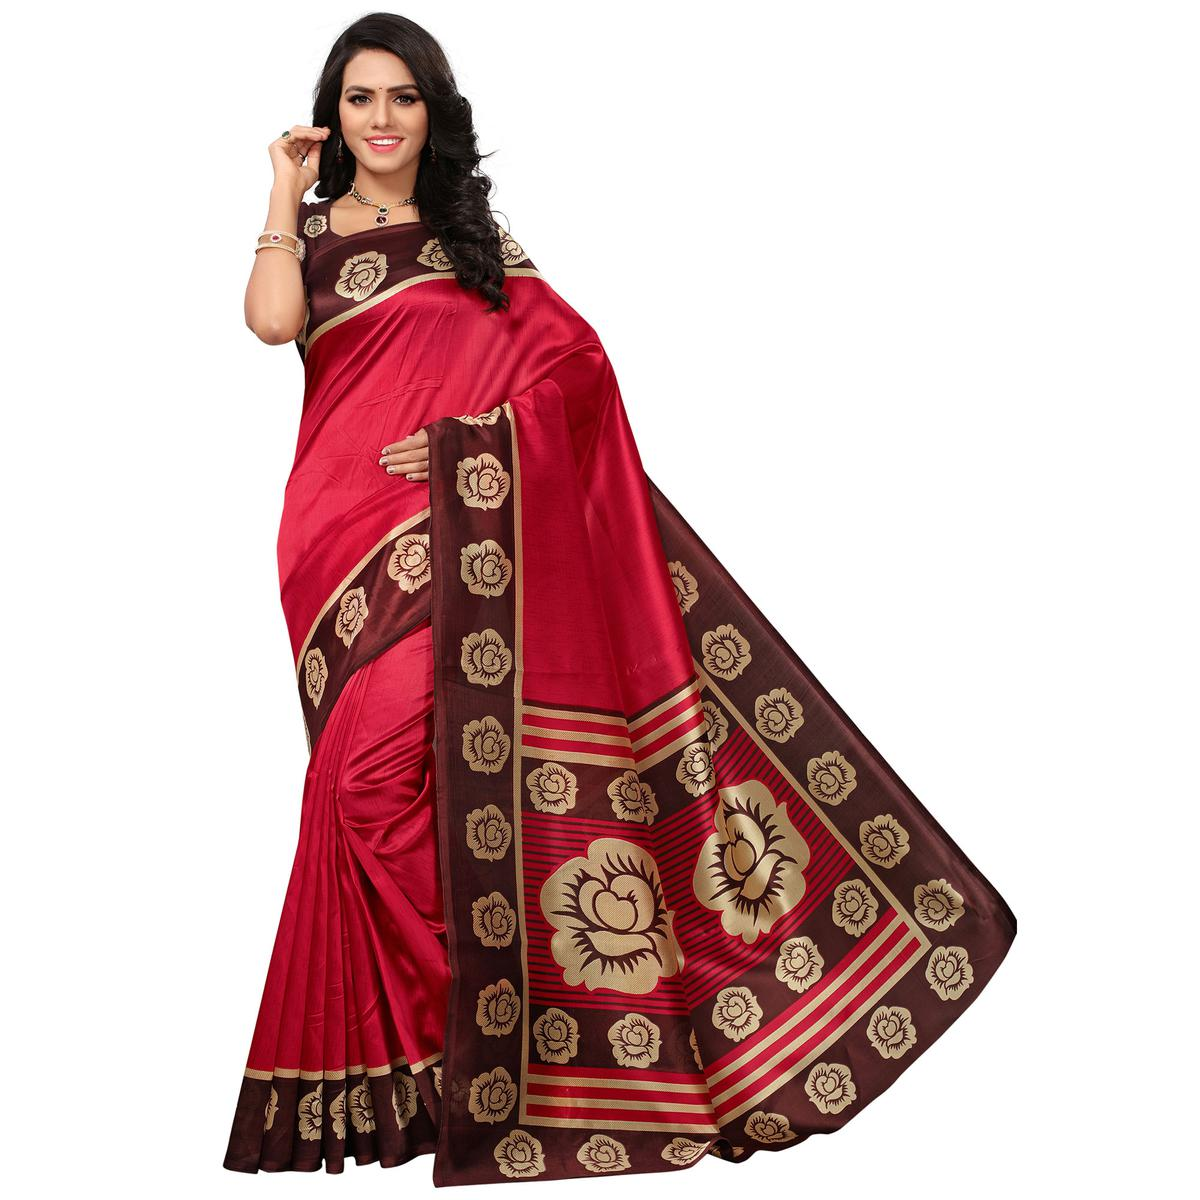 Unique Red Colored Casual Printed Mysore Art Silk Saree